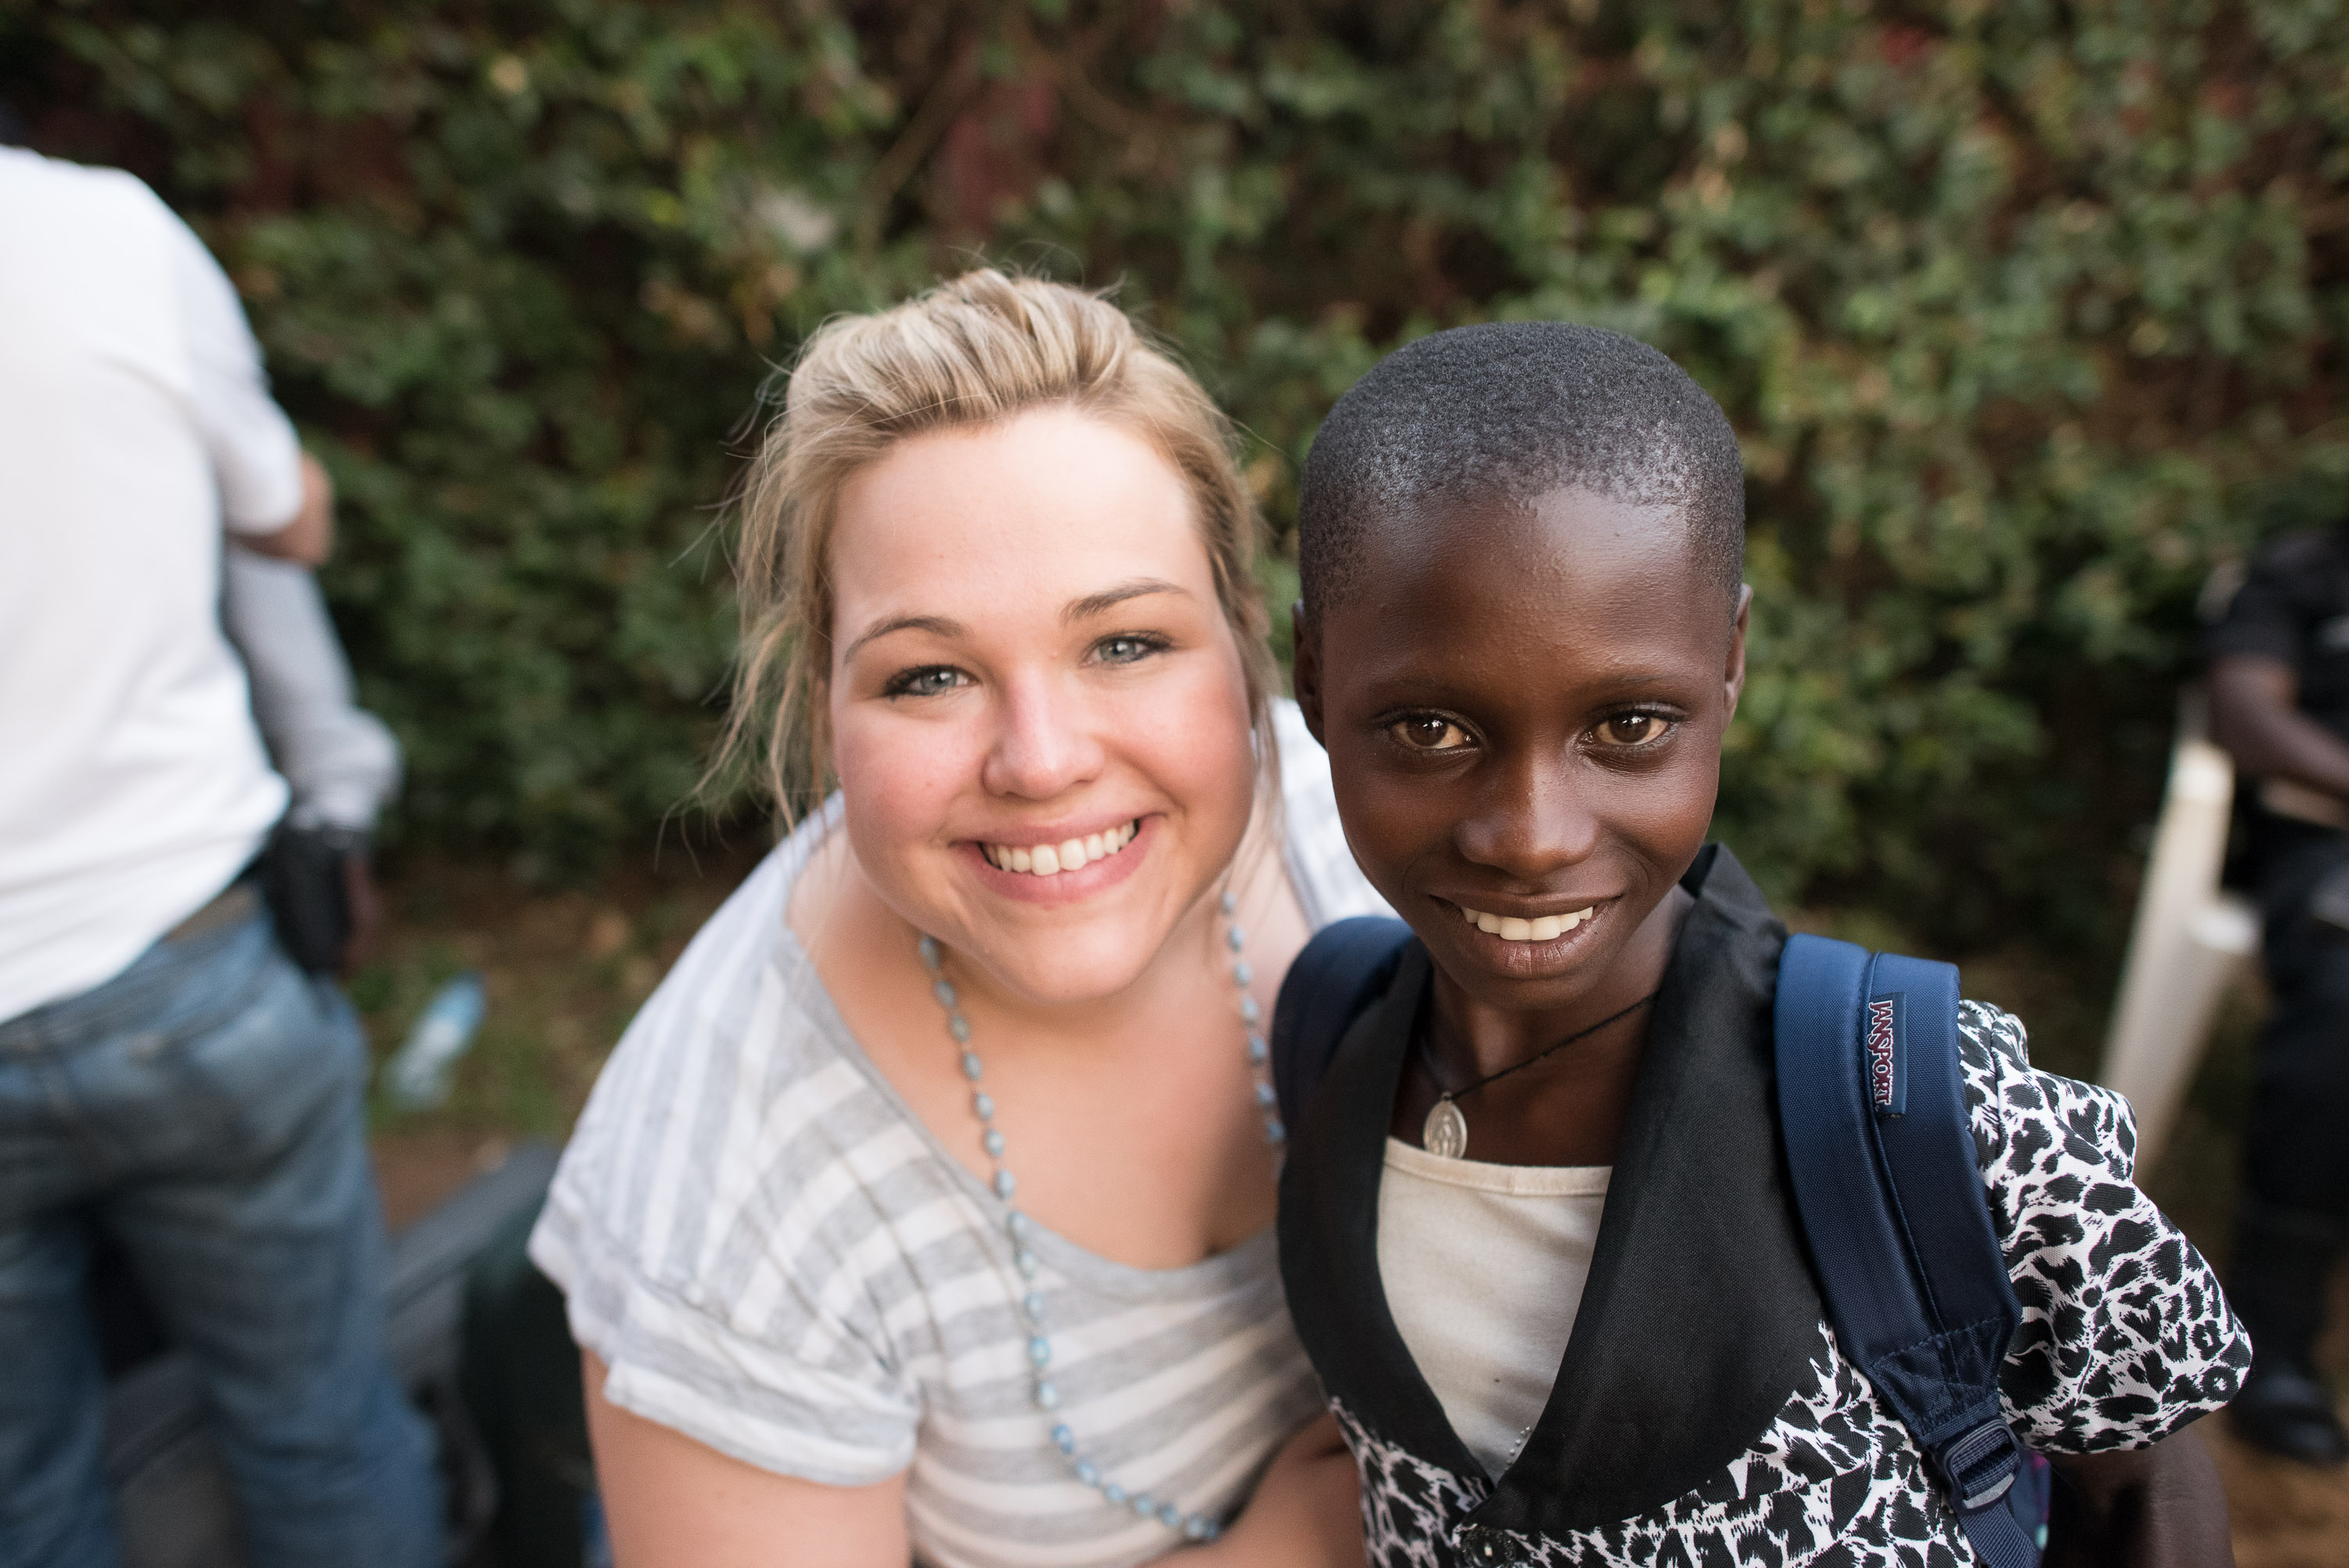 314Chan surprise! we all need jesus | compassion international